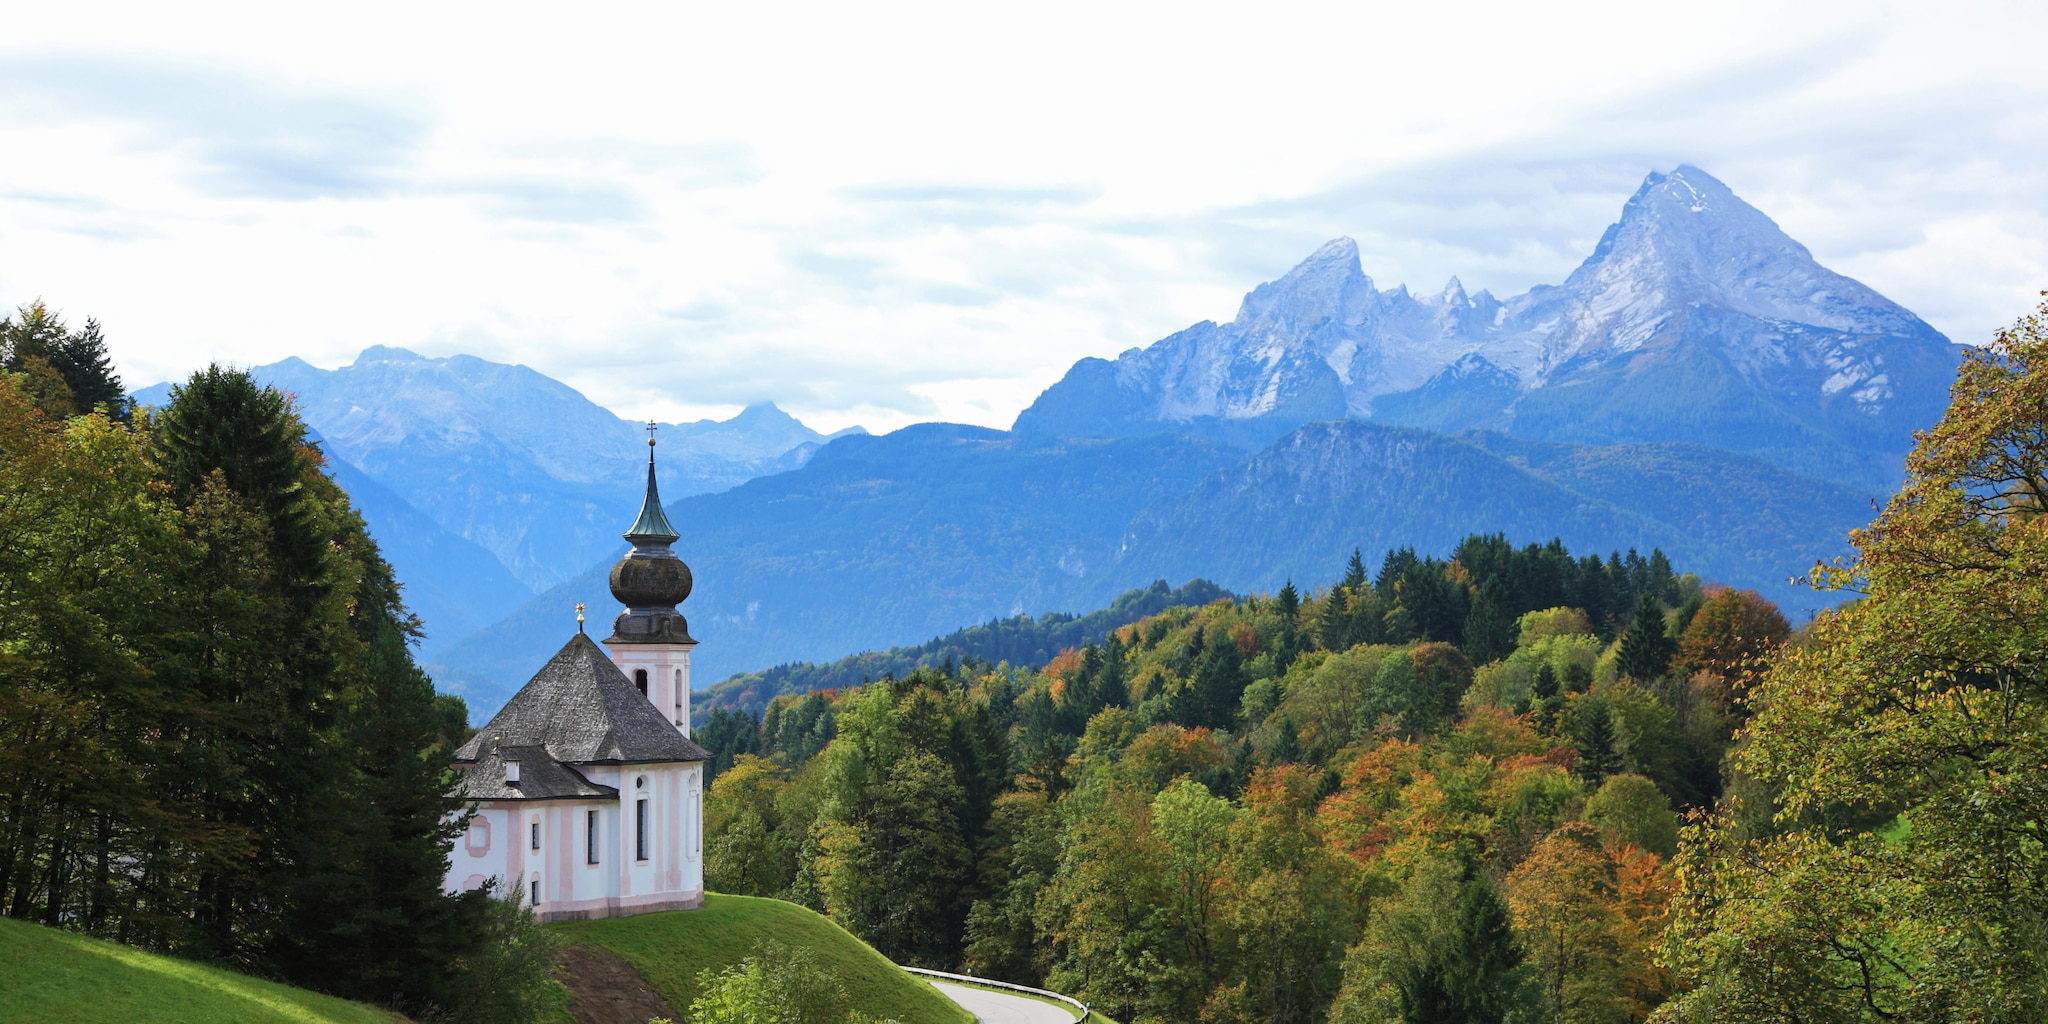 A little church with a steeple on a curvy road surrounded by mountains